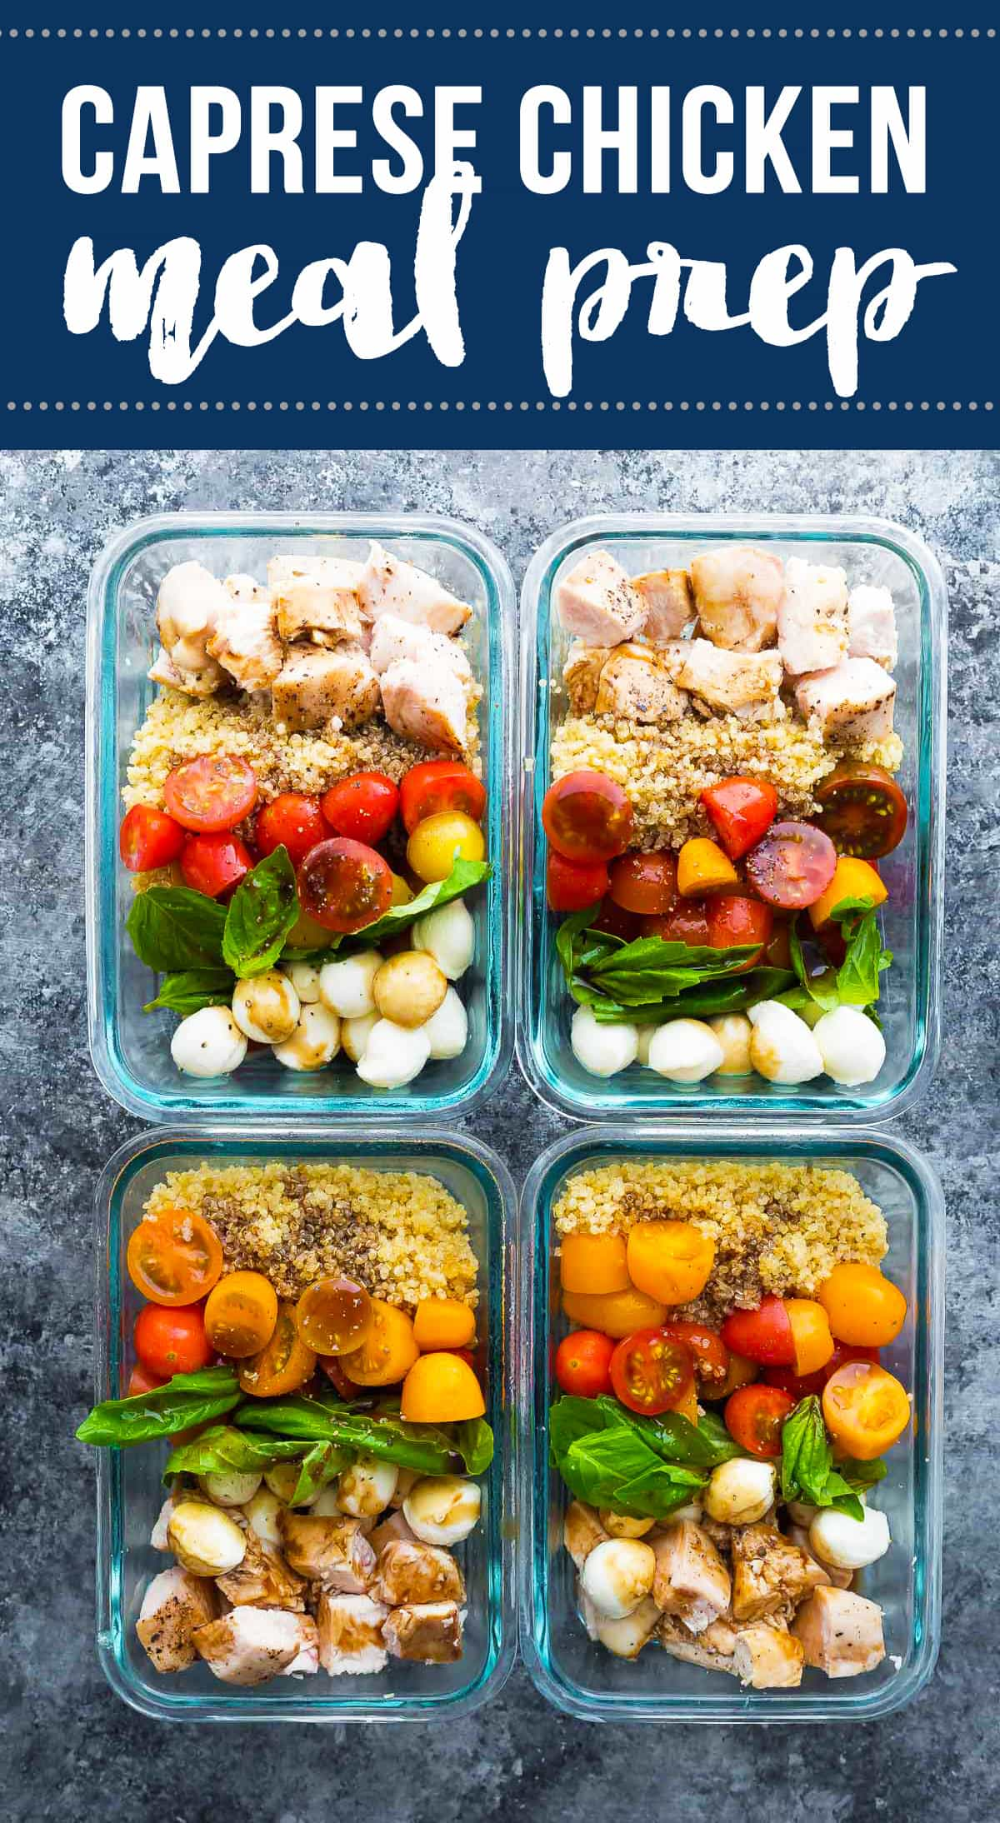 Caprese chicken salad meal prep bowls bring a dose of summer to your lunch. With baked chicken, fre